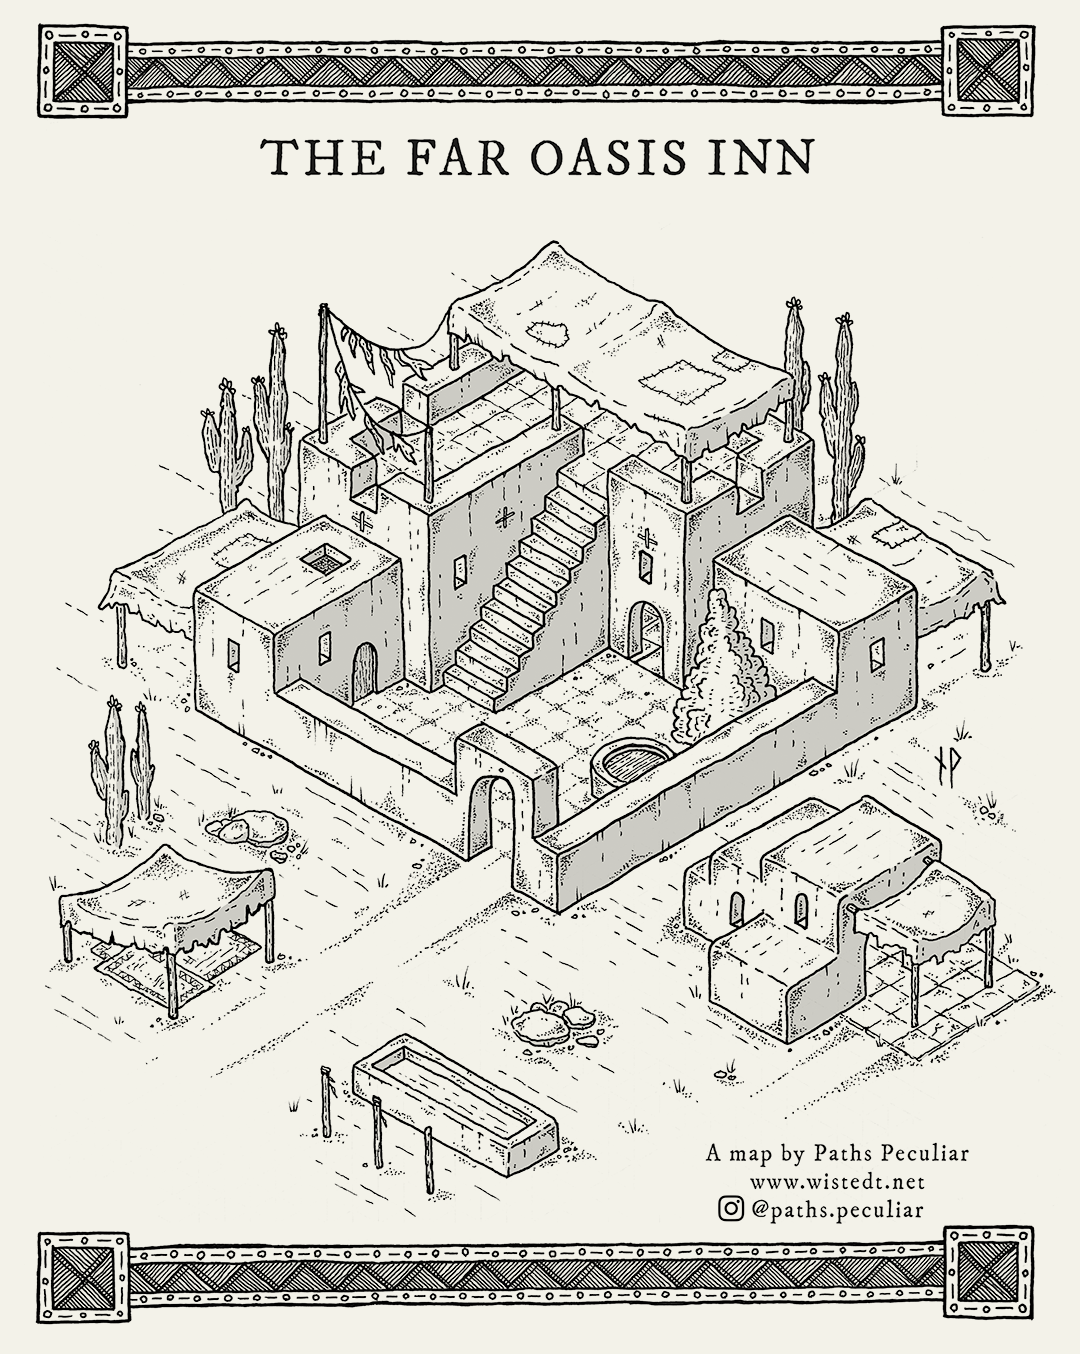 The Far Oasis Inn, isometric fantasy map